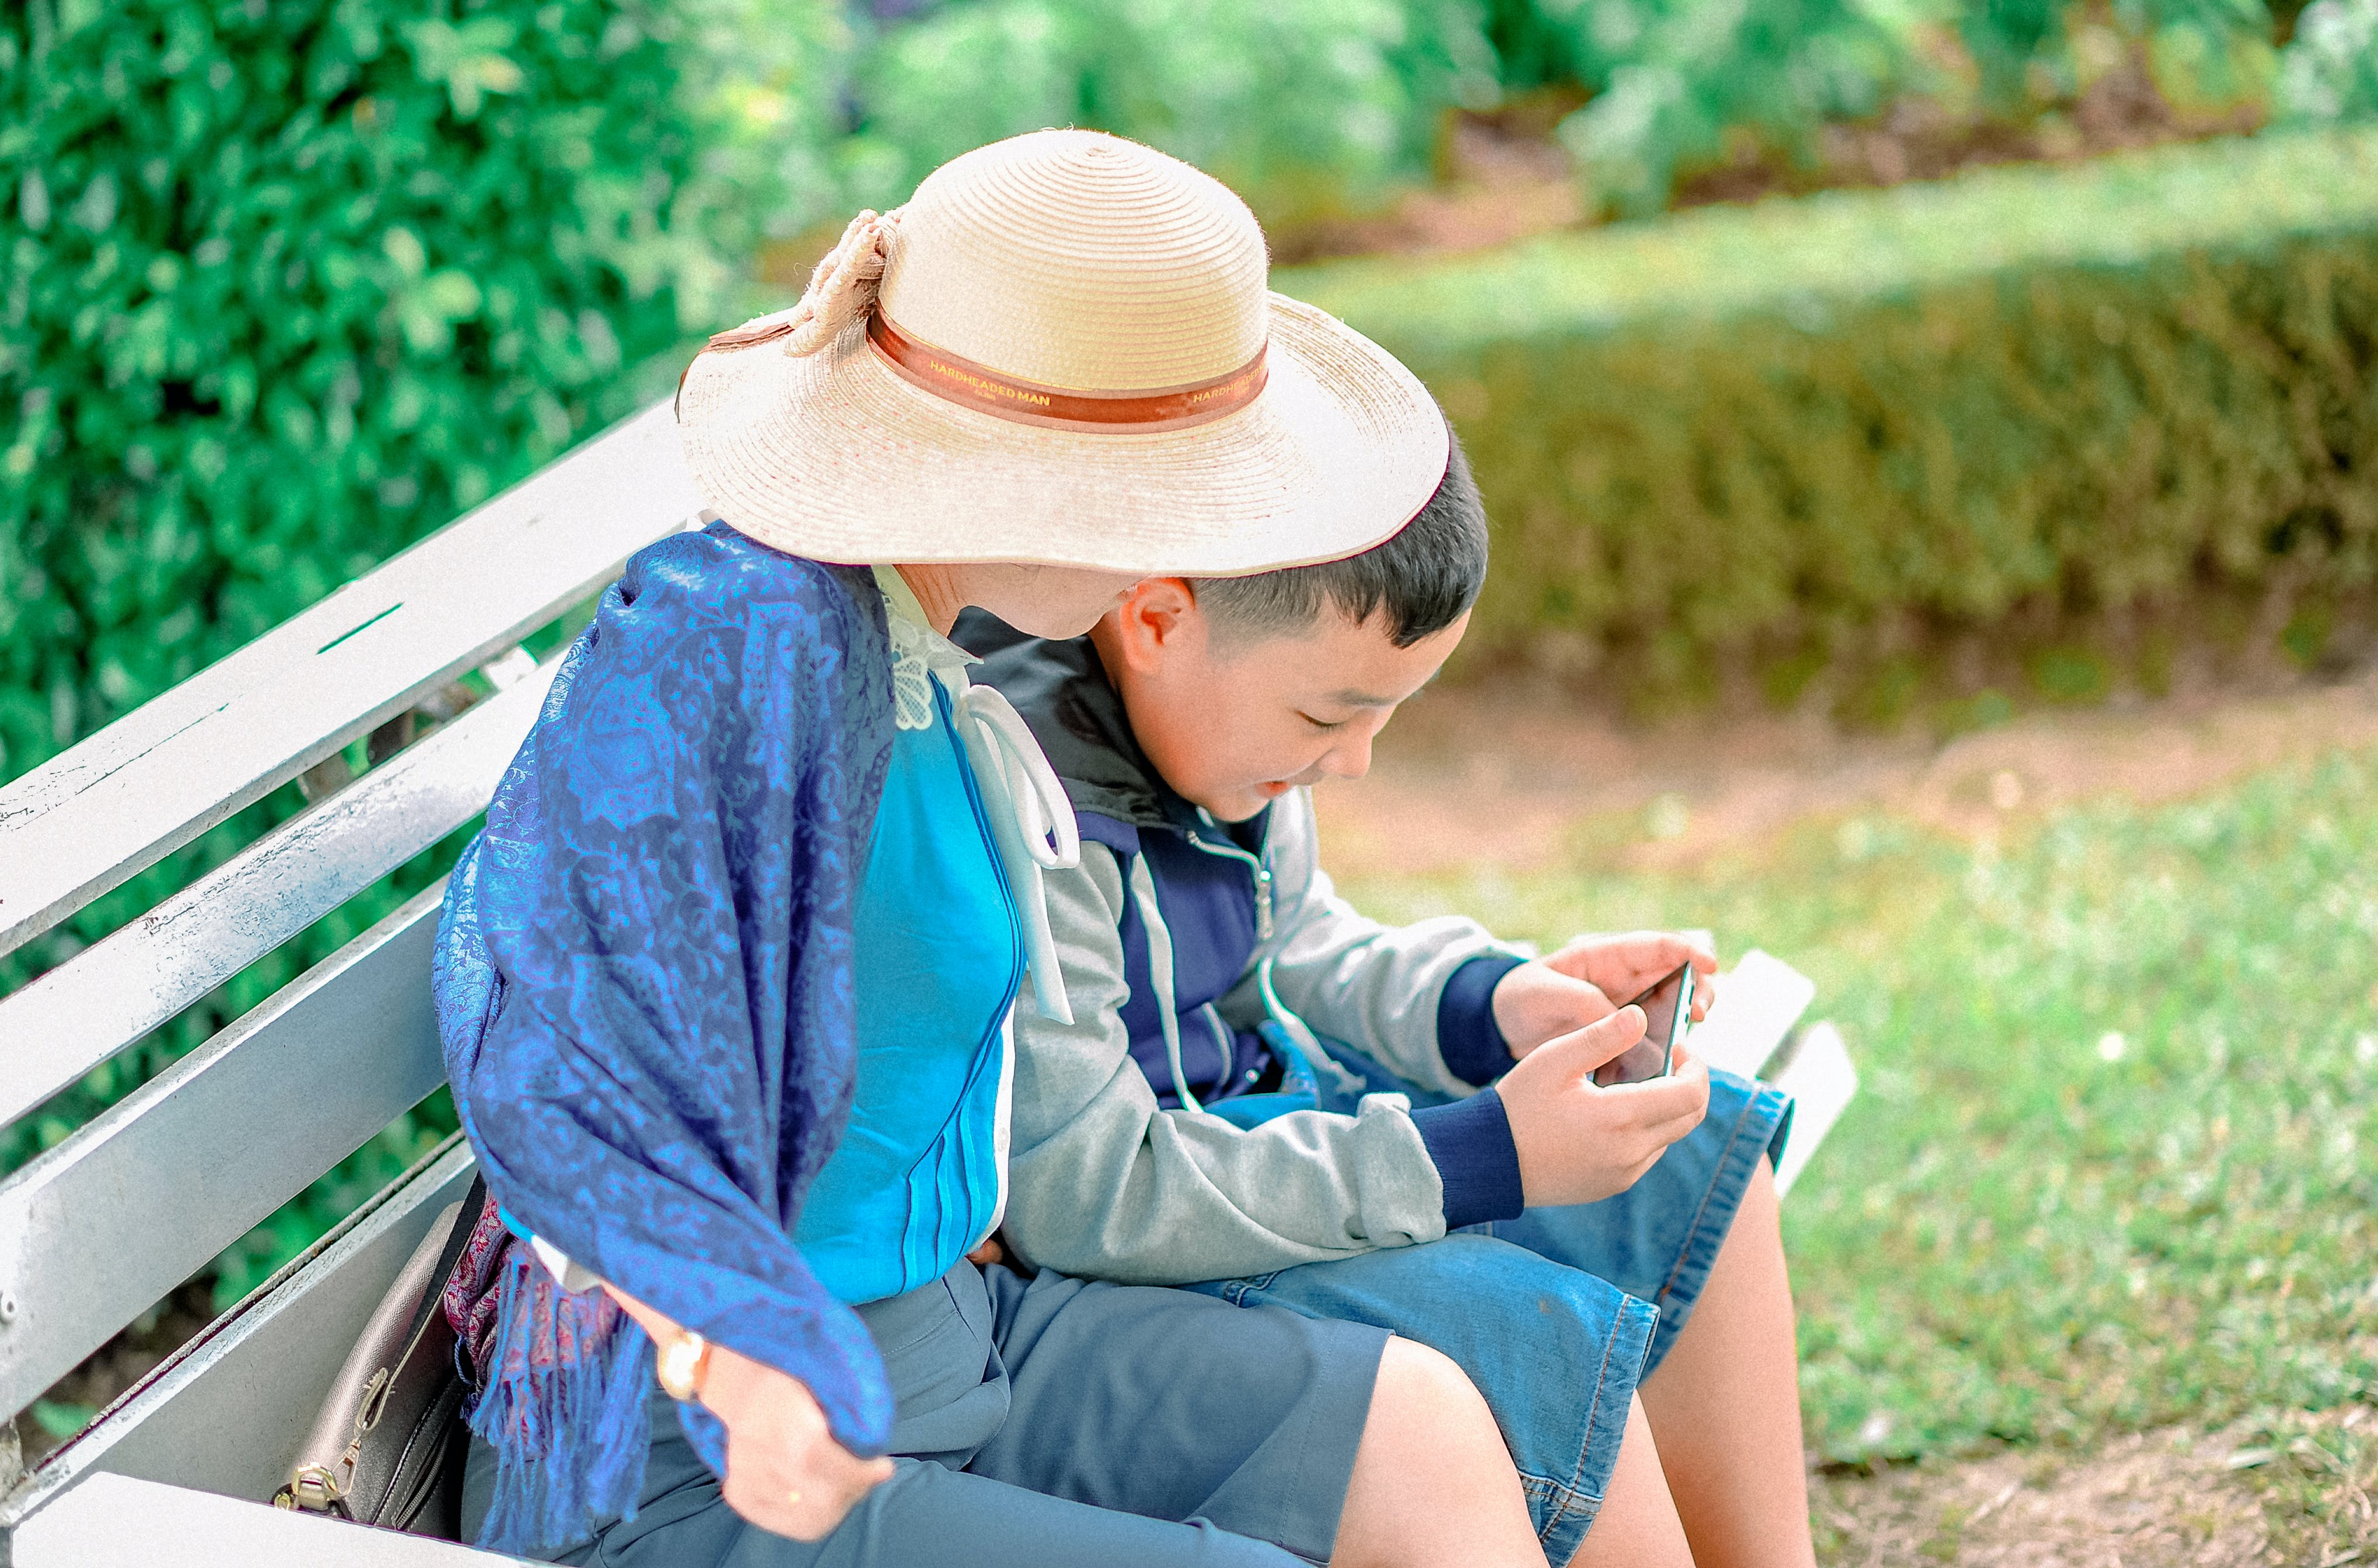 Boy Wears Gray, Blue, and Black Zip-up Jacket Holds Smartphone Next to Person Wears Beige Sun Hat Both Sits on Gray Wooden Bench